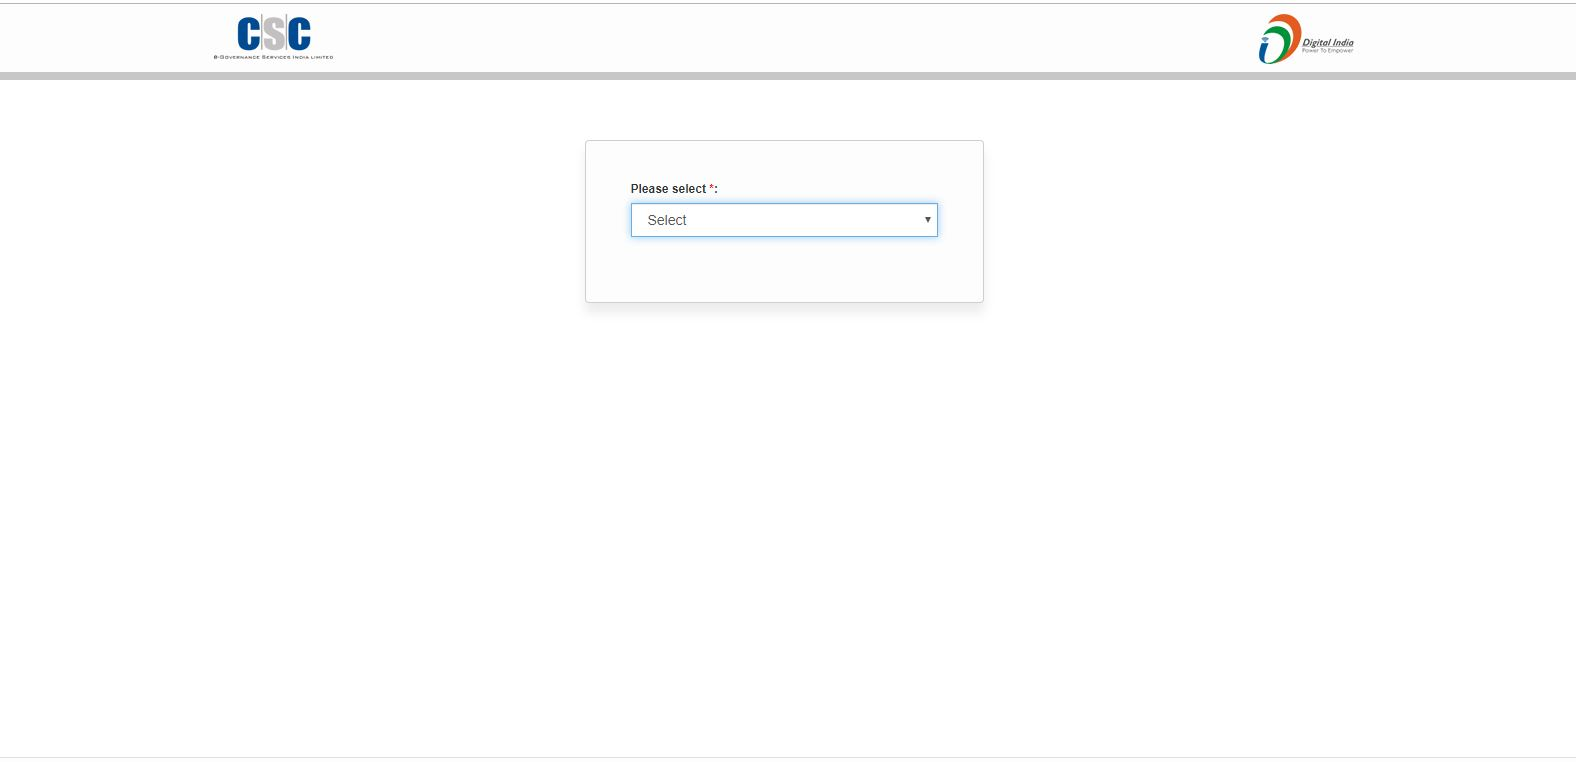 HOW TO CHECK HDFC BANK BC CURRENT ACCOUNT OPENING STATUS